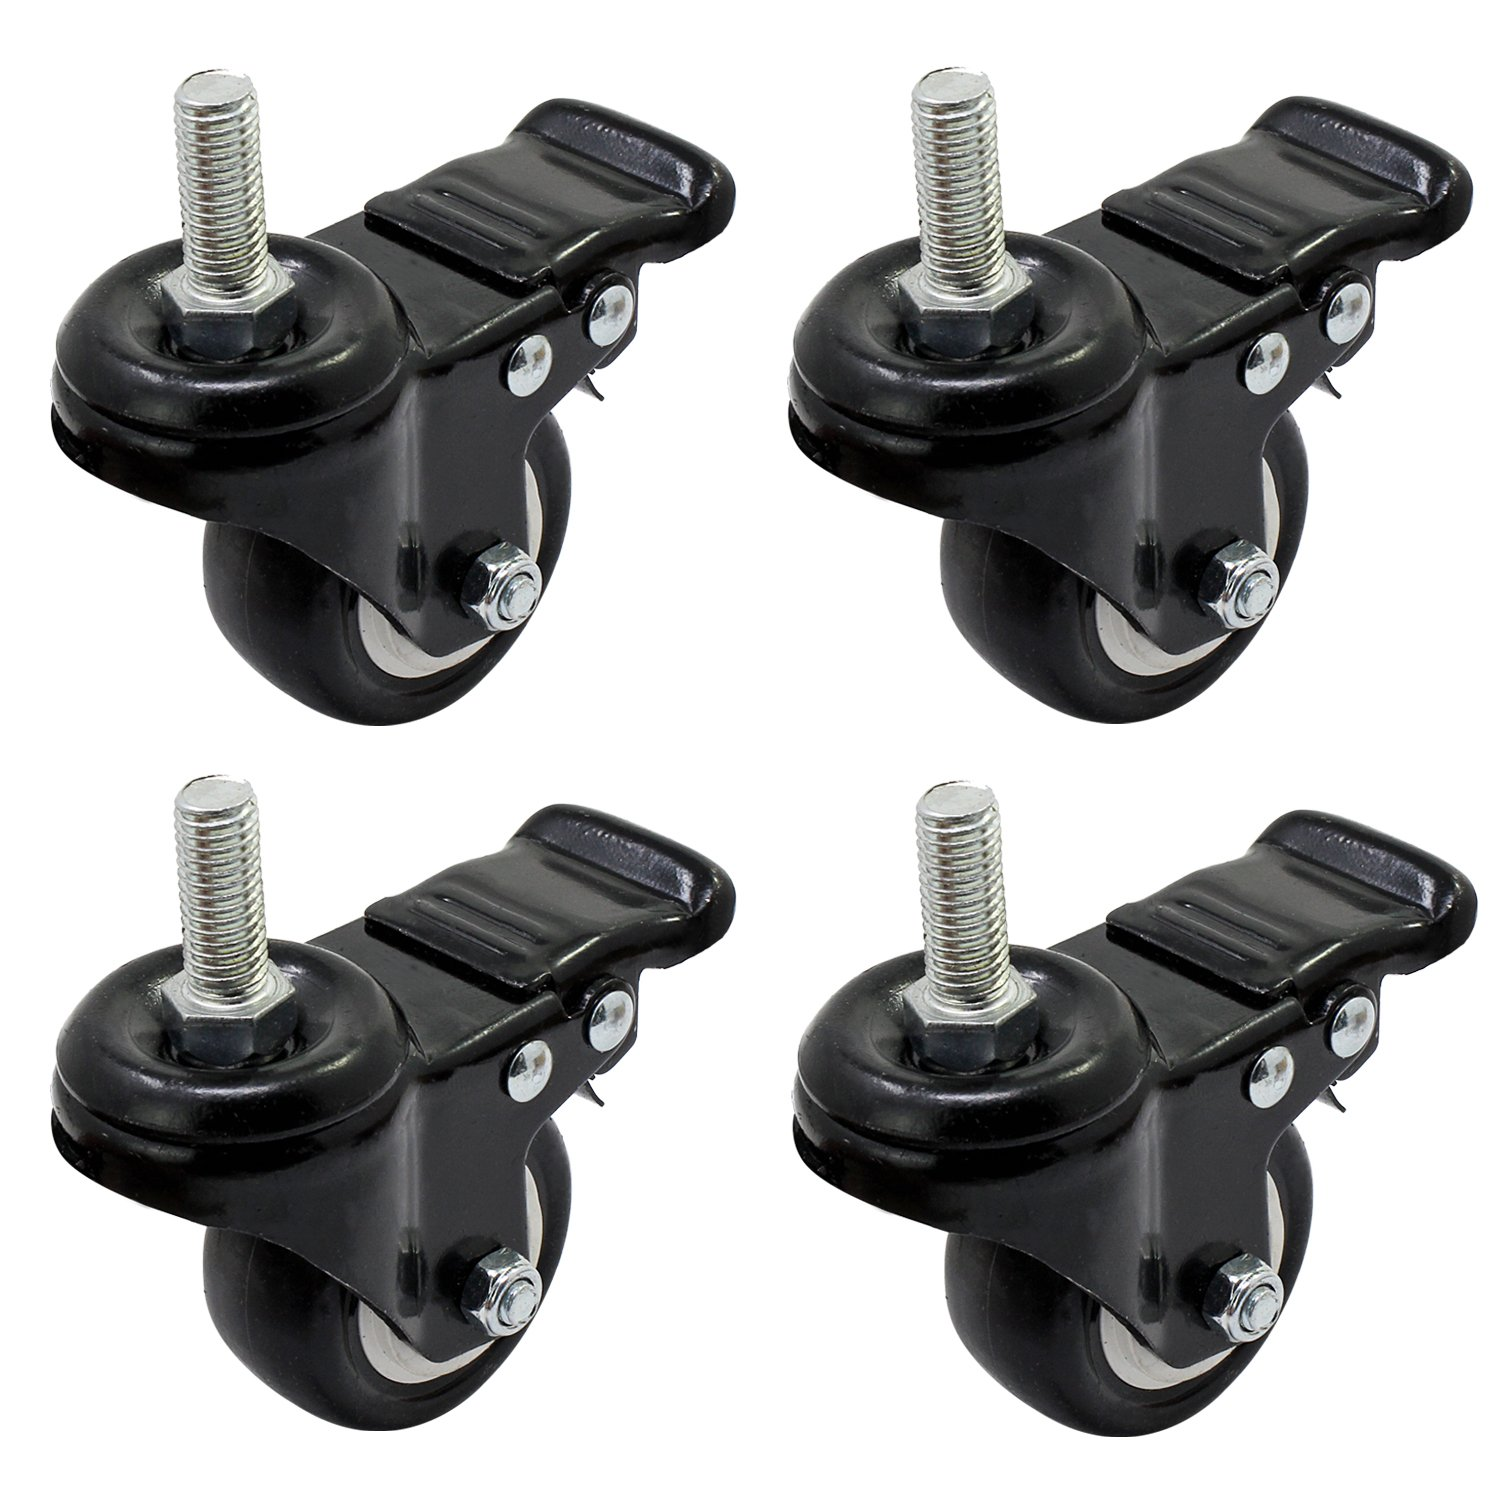 OCR 38MM Caster Rubber Base 360 Degree Caster Rubber Wheel With Brake for Shopping carts, Hand Trolley, Tools, Movable Furniture,Office Chair 4 Pcs Black (1.5''-Threaded shaft Wheel)